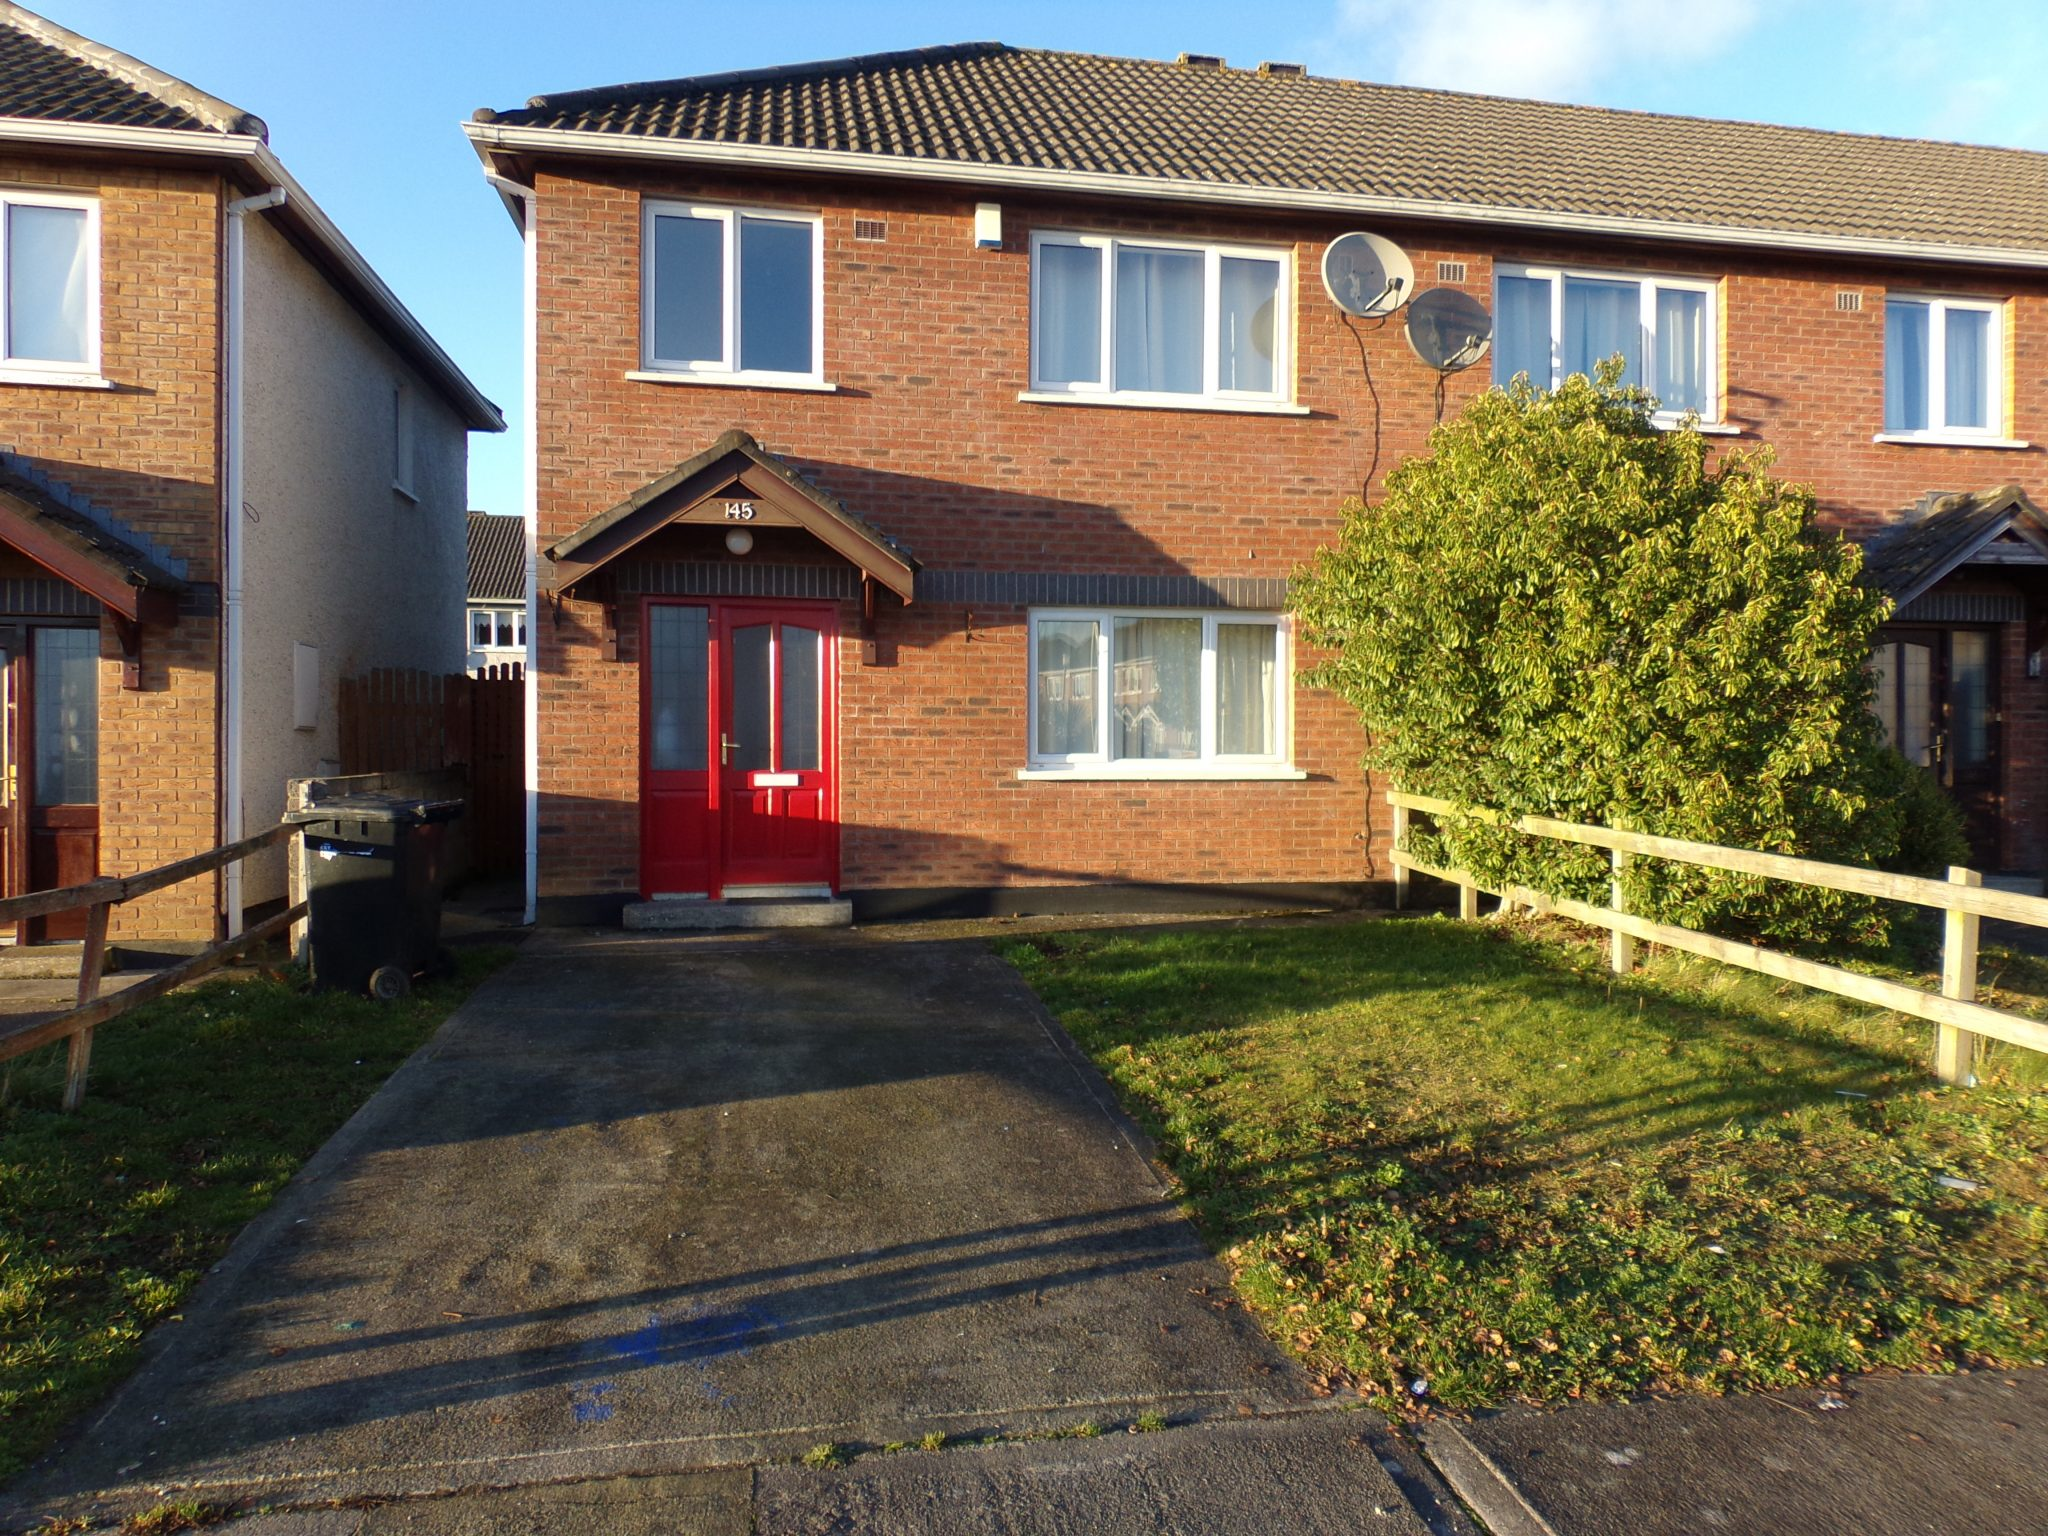 145 The Laurels, Tullow Road, Carlow